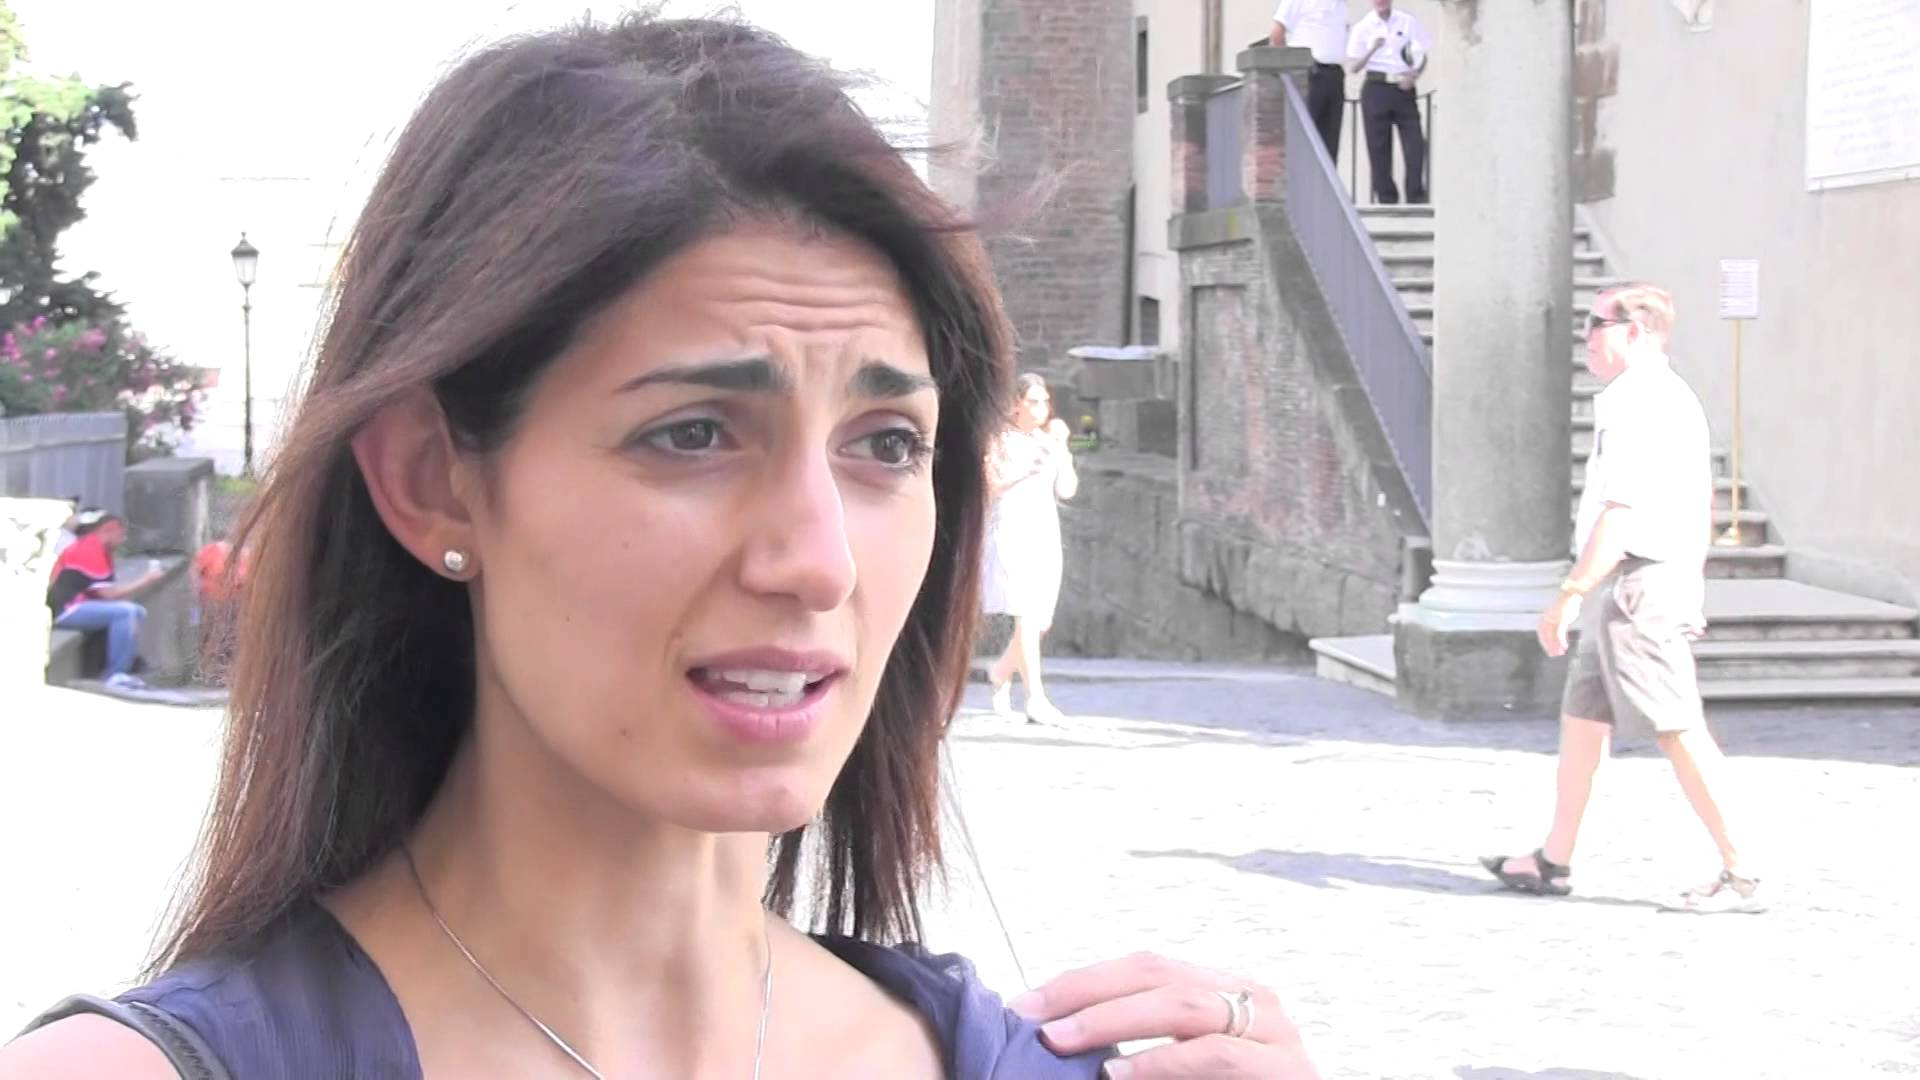 virginia raggi movimento 5 stelle